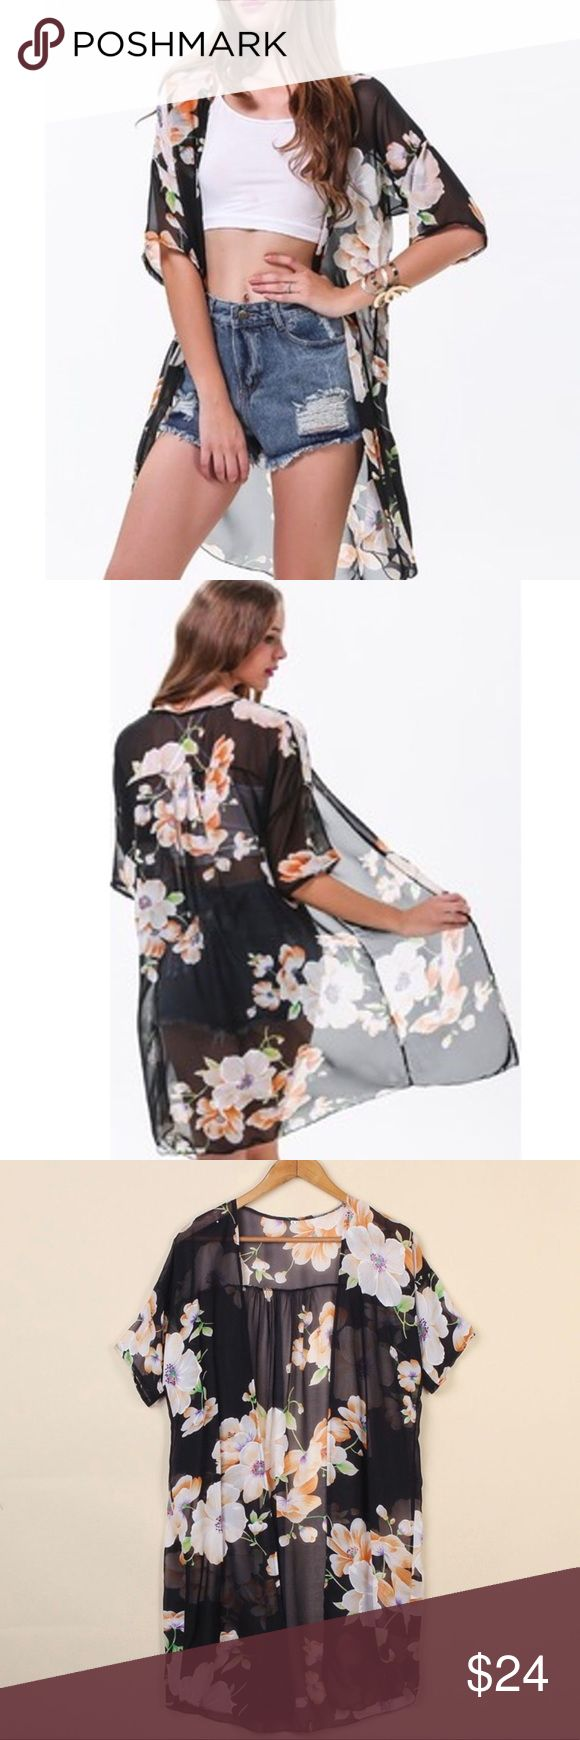 ✨New✨Floral Chiffon Cardigan Brand new Floral Chiffon Cardigan. Can be worn with a dress or over a swim suit. Such a gorgeous piece! Available in Medium or Large. Boutique Sweaters Cardigans